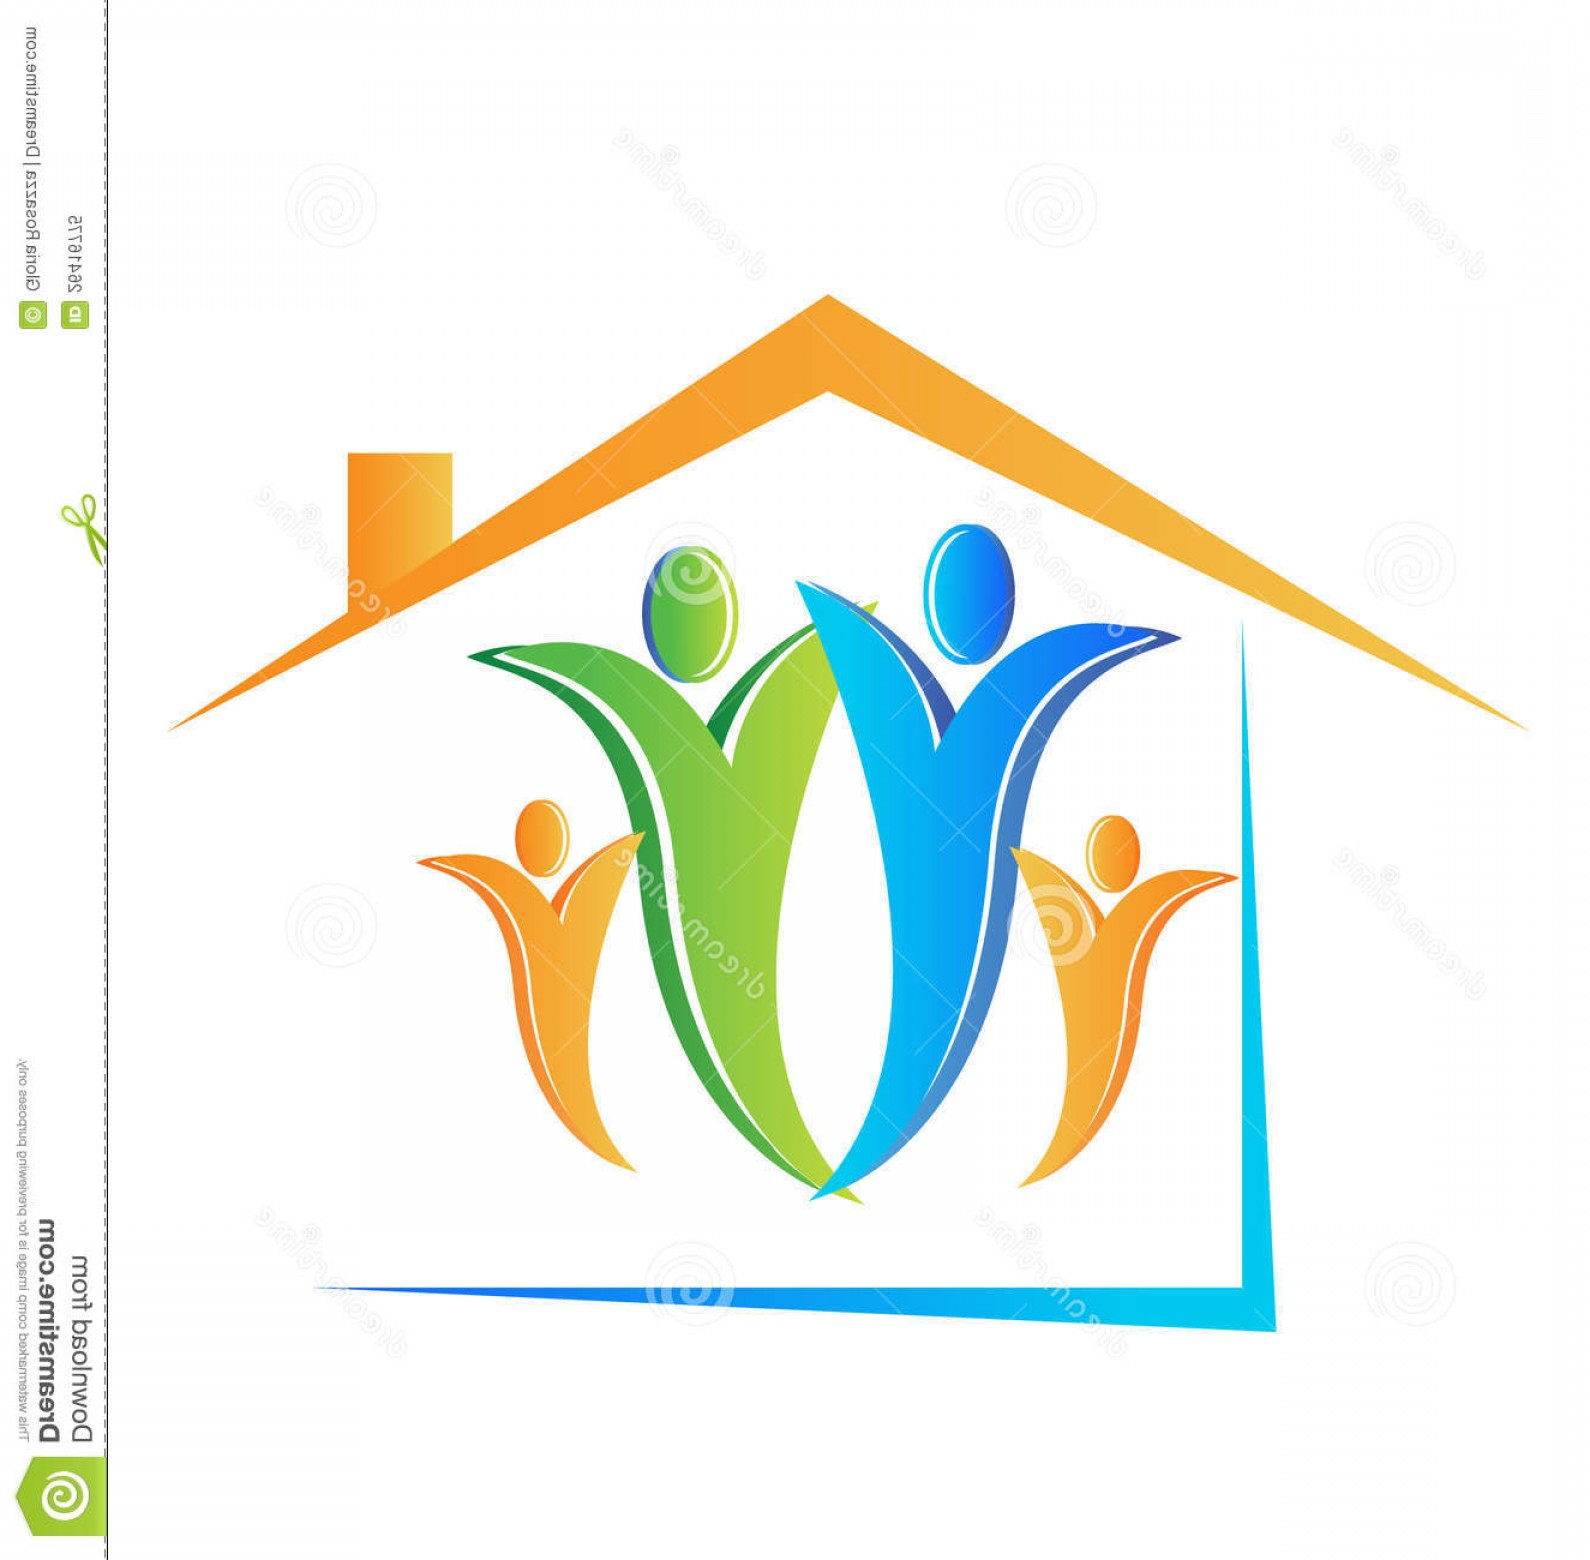 Home Logo Vector: Royalty Free Stock Photo Family House Logo Image